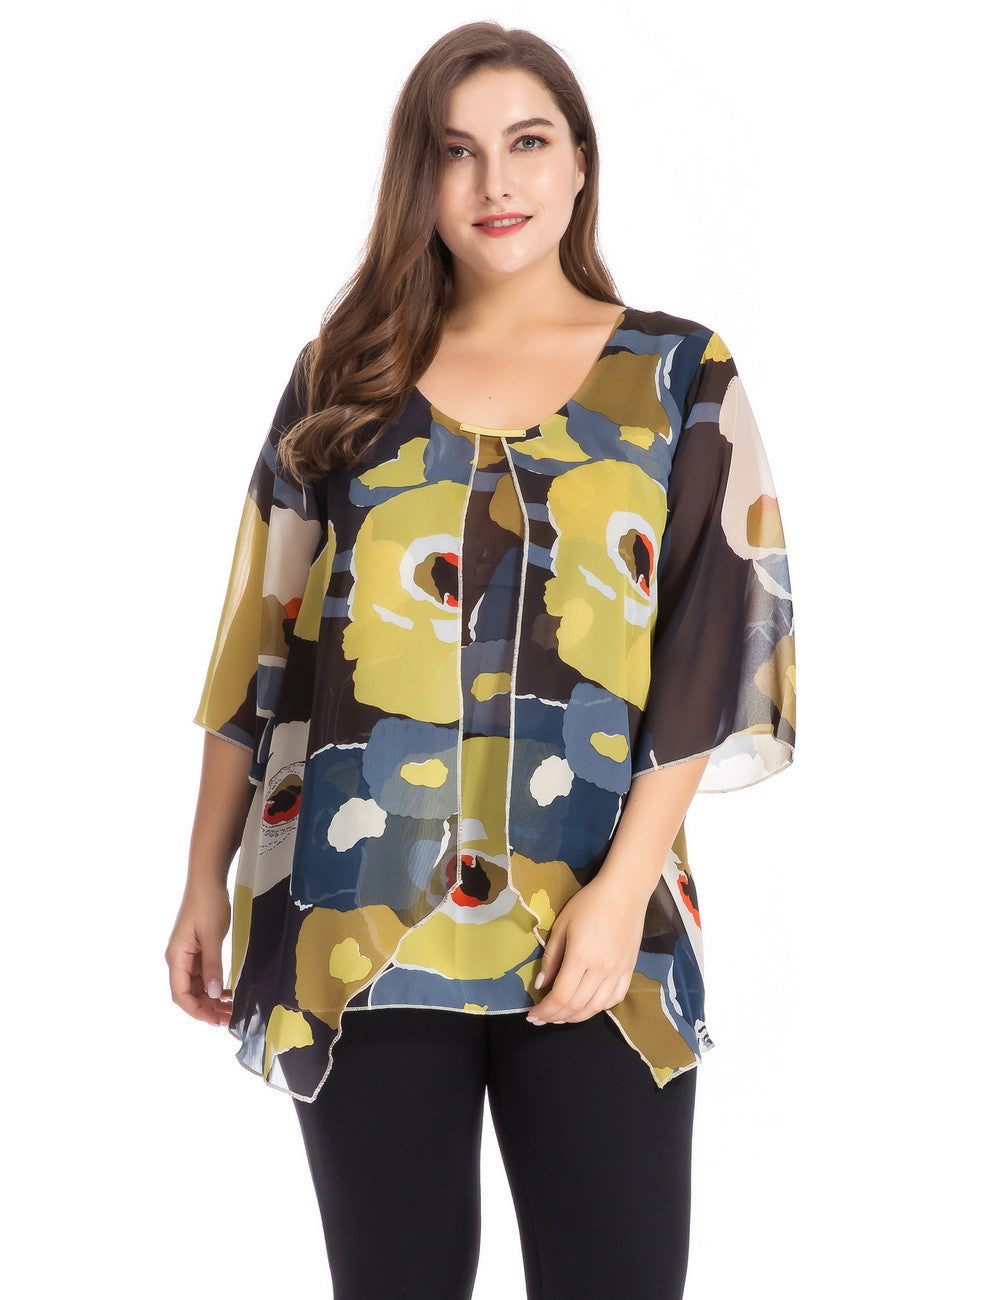 Chicwe Women's Plus Size Floral Printed Top Blouse with Metal Trim and Bell Sleeves 1X-4X